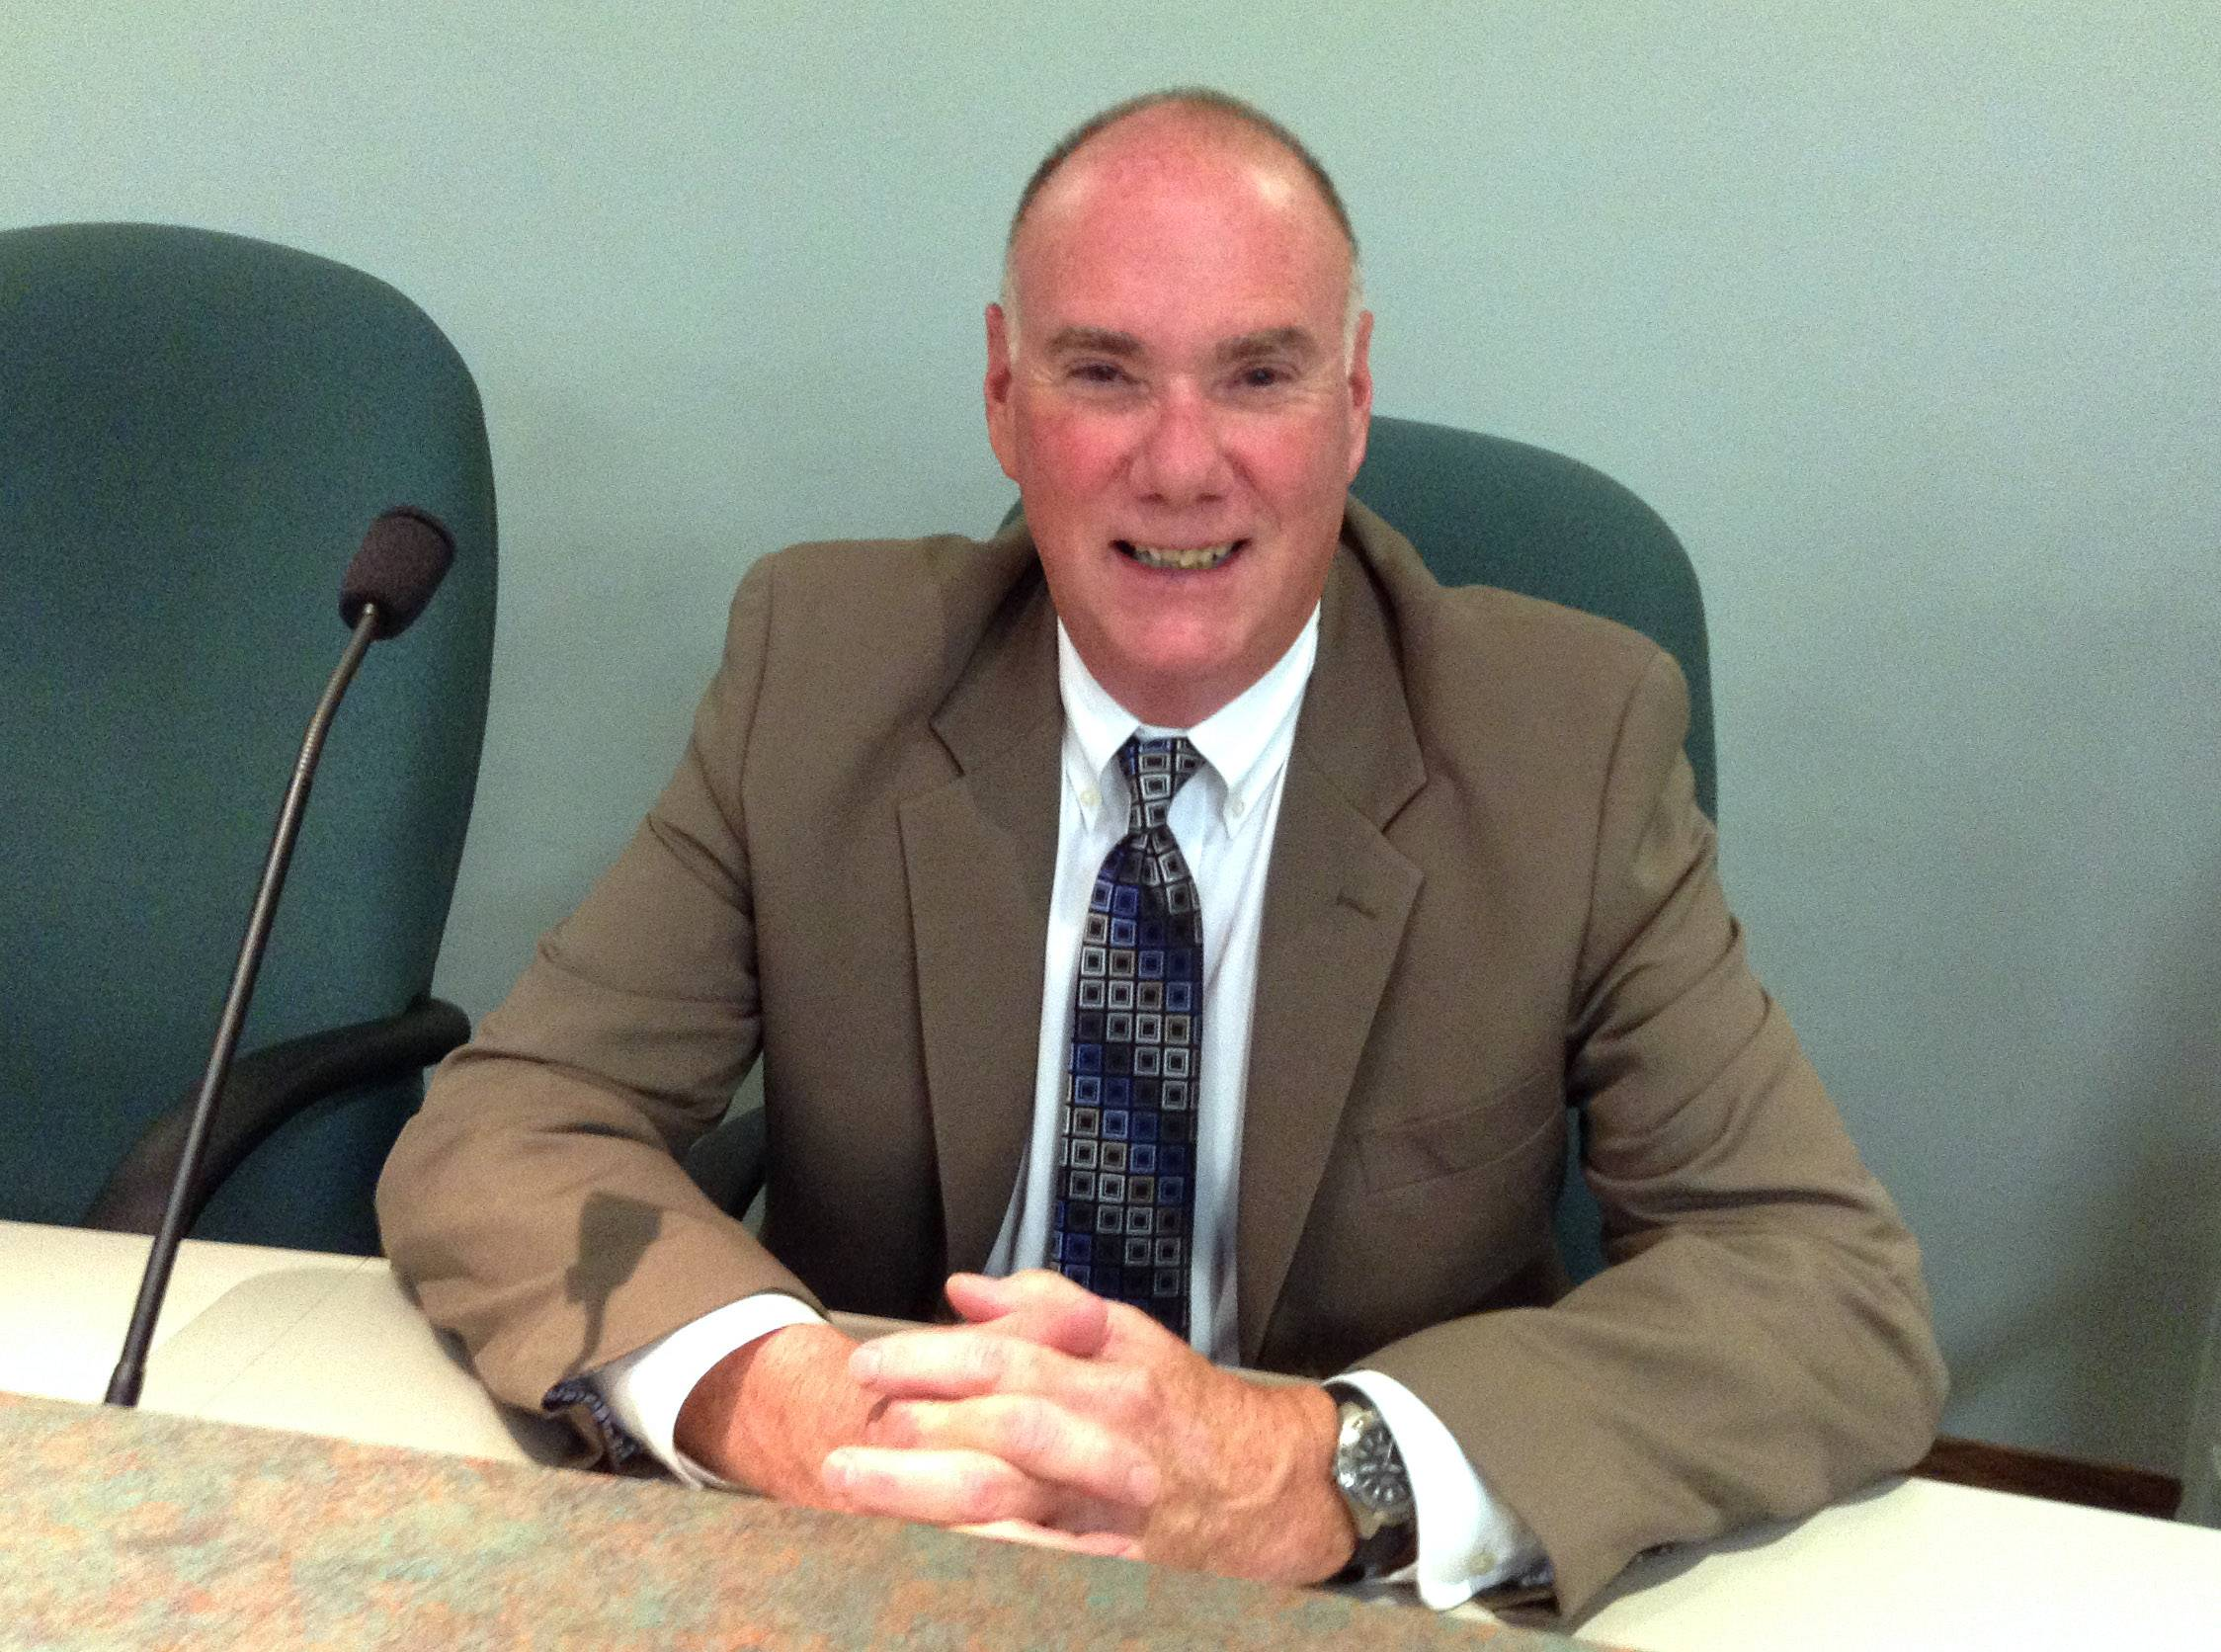 Bank executive appointed to Libertyville village board